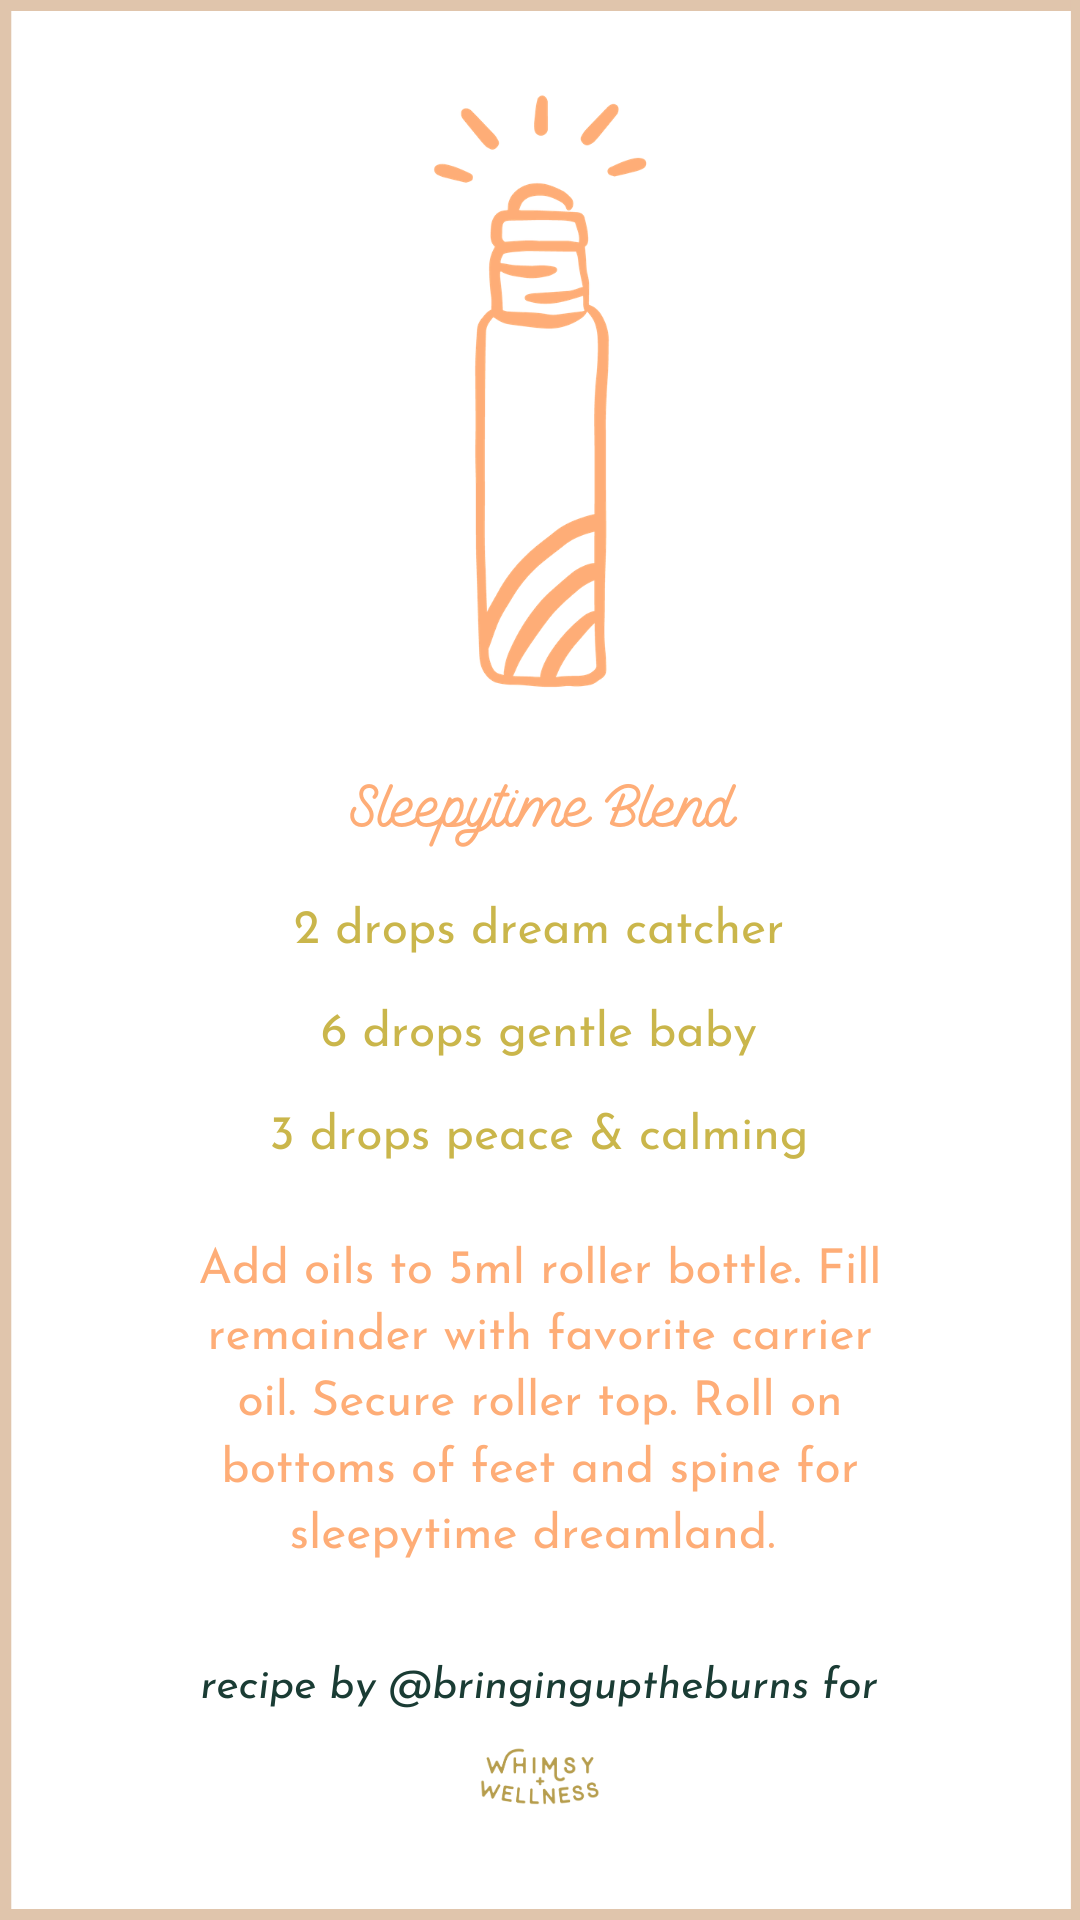 Sleepytime Blend with essential oils by Elisha Burns For Whimsy + Wellness